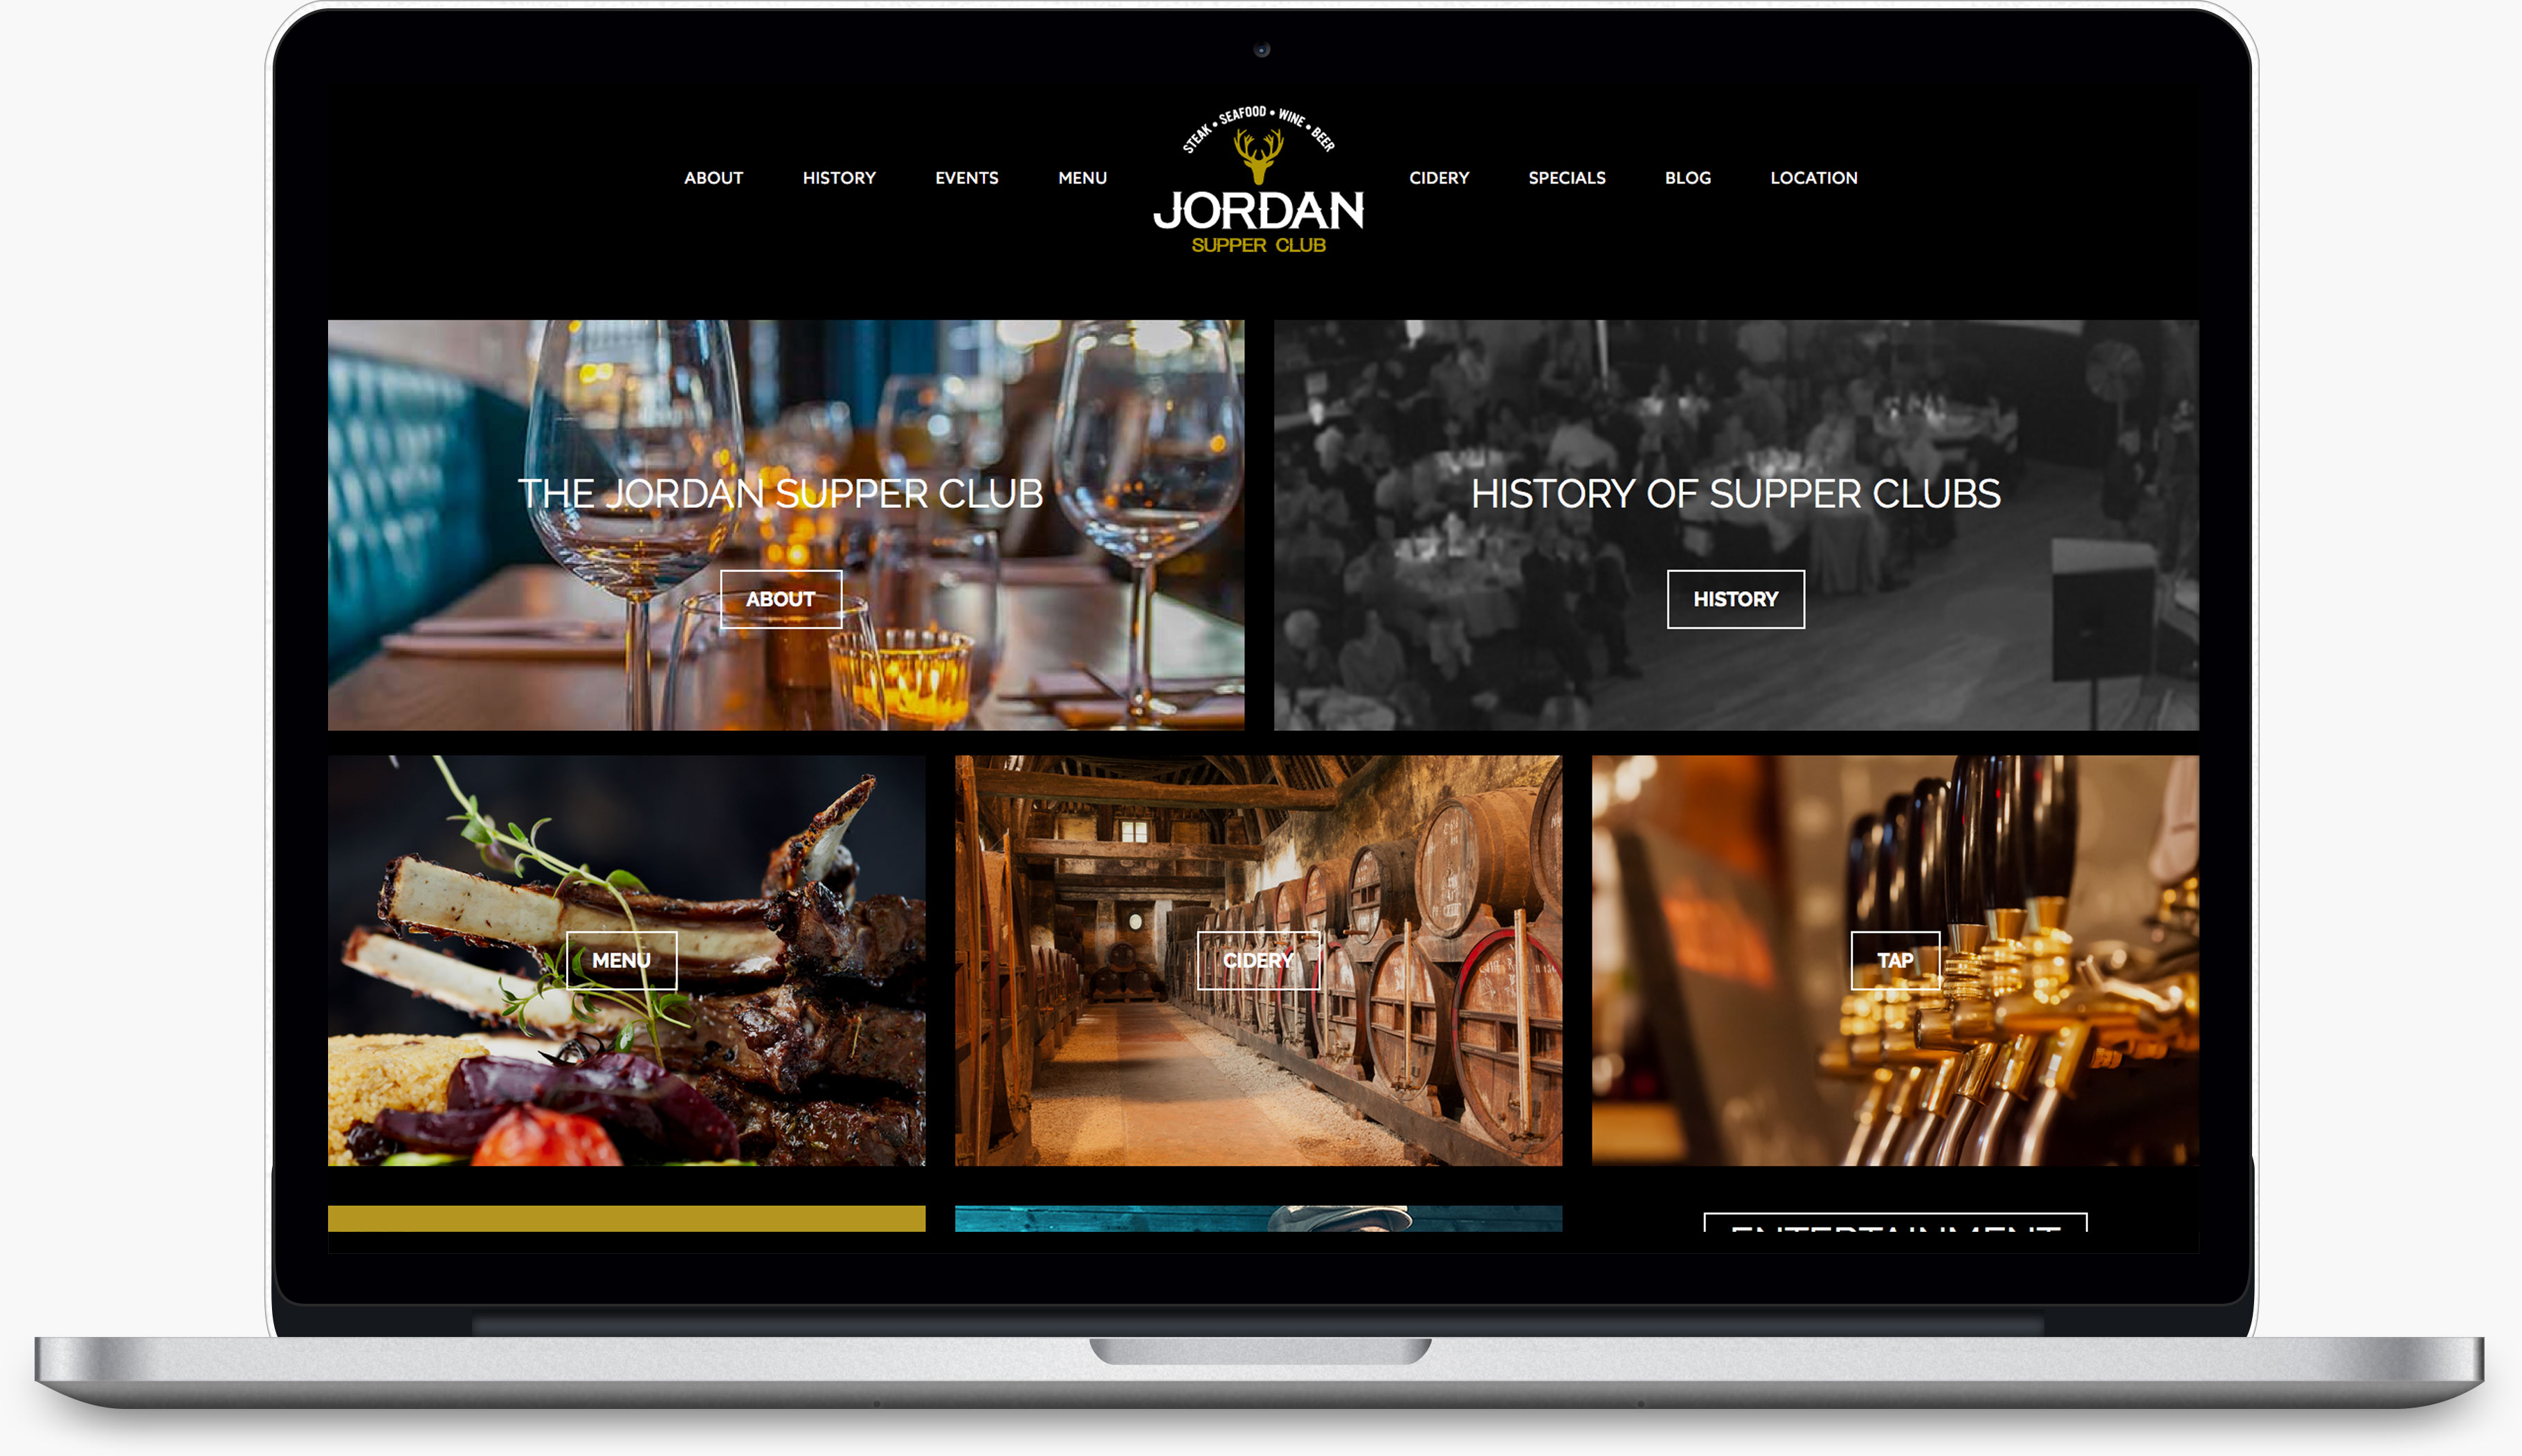 Web Design: 5 Ways To Make Your Website Standout